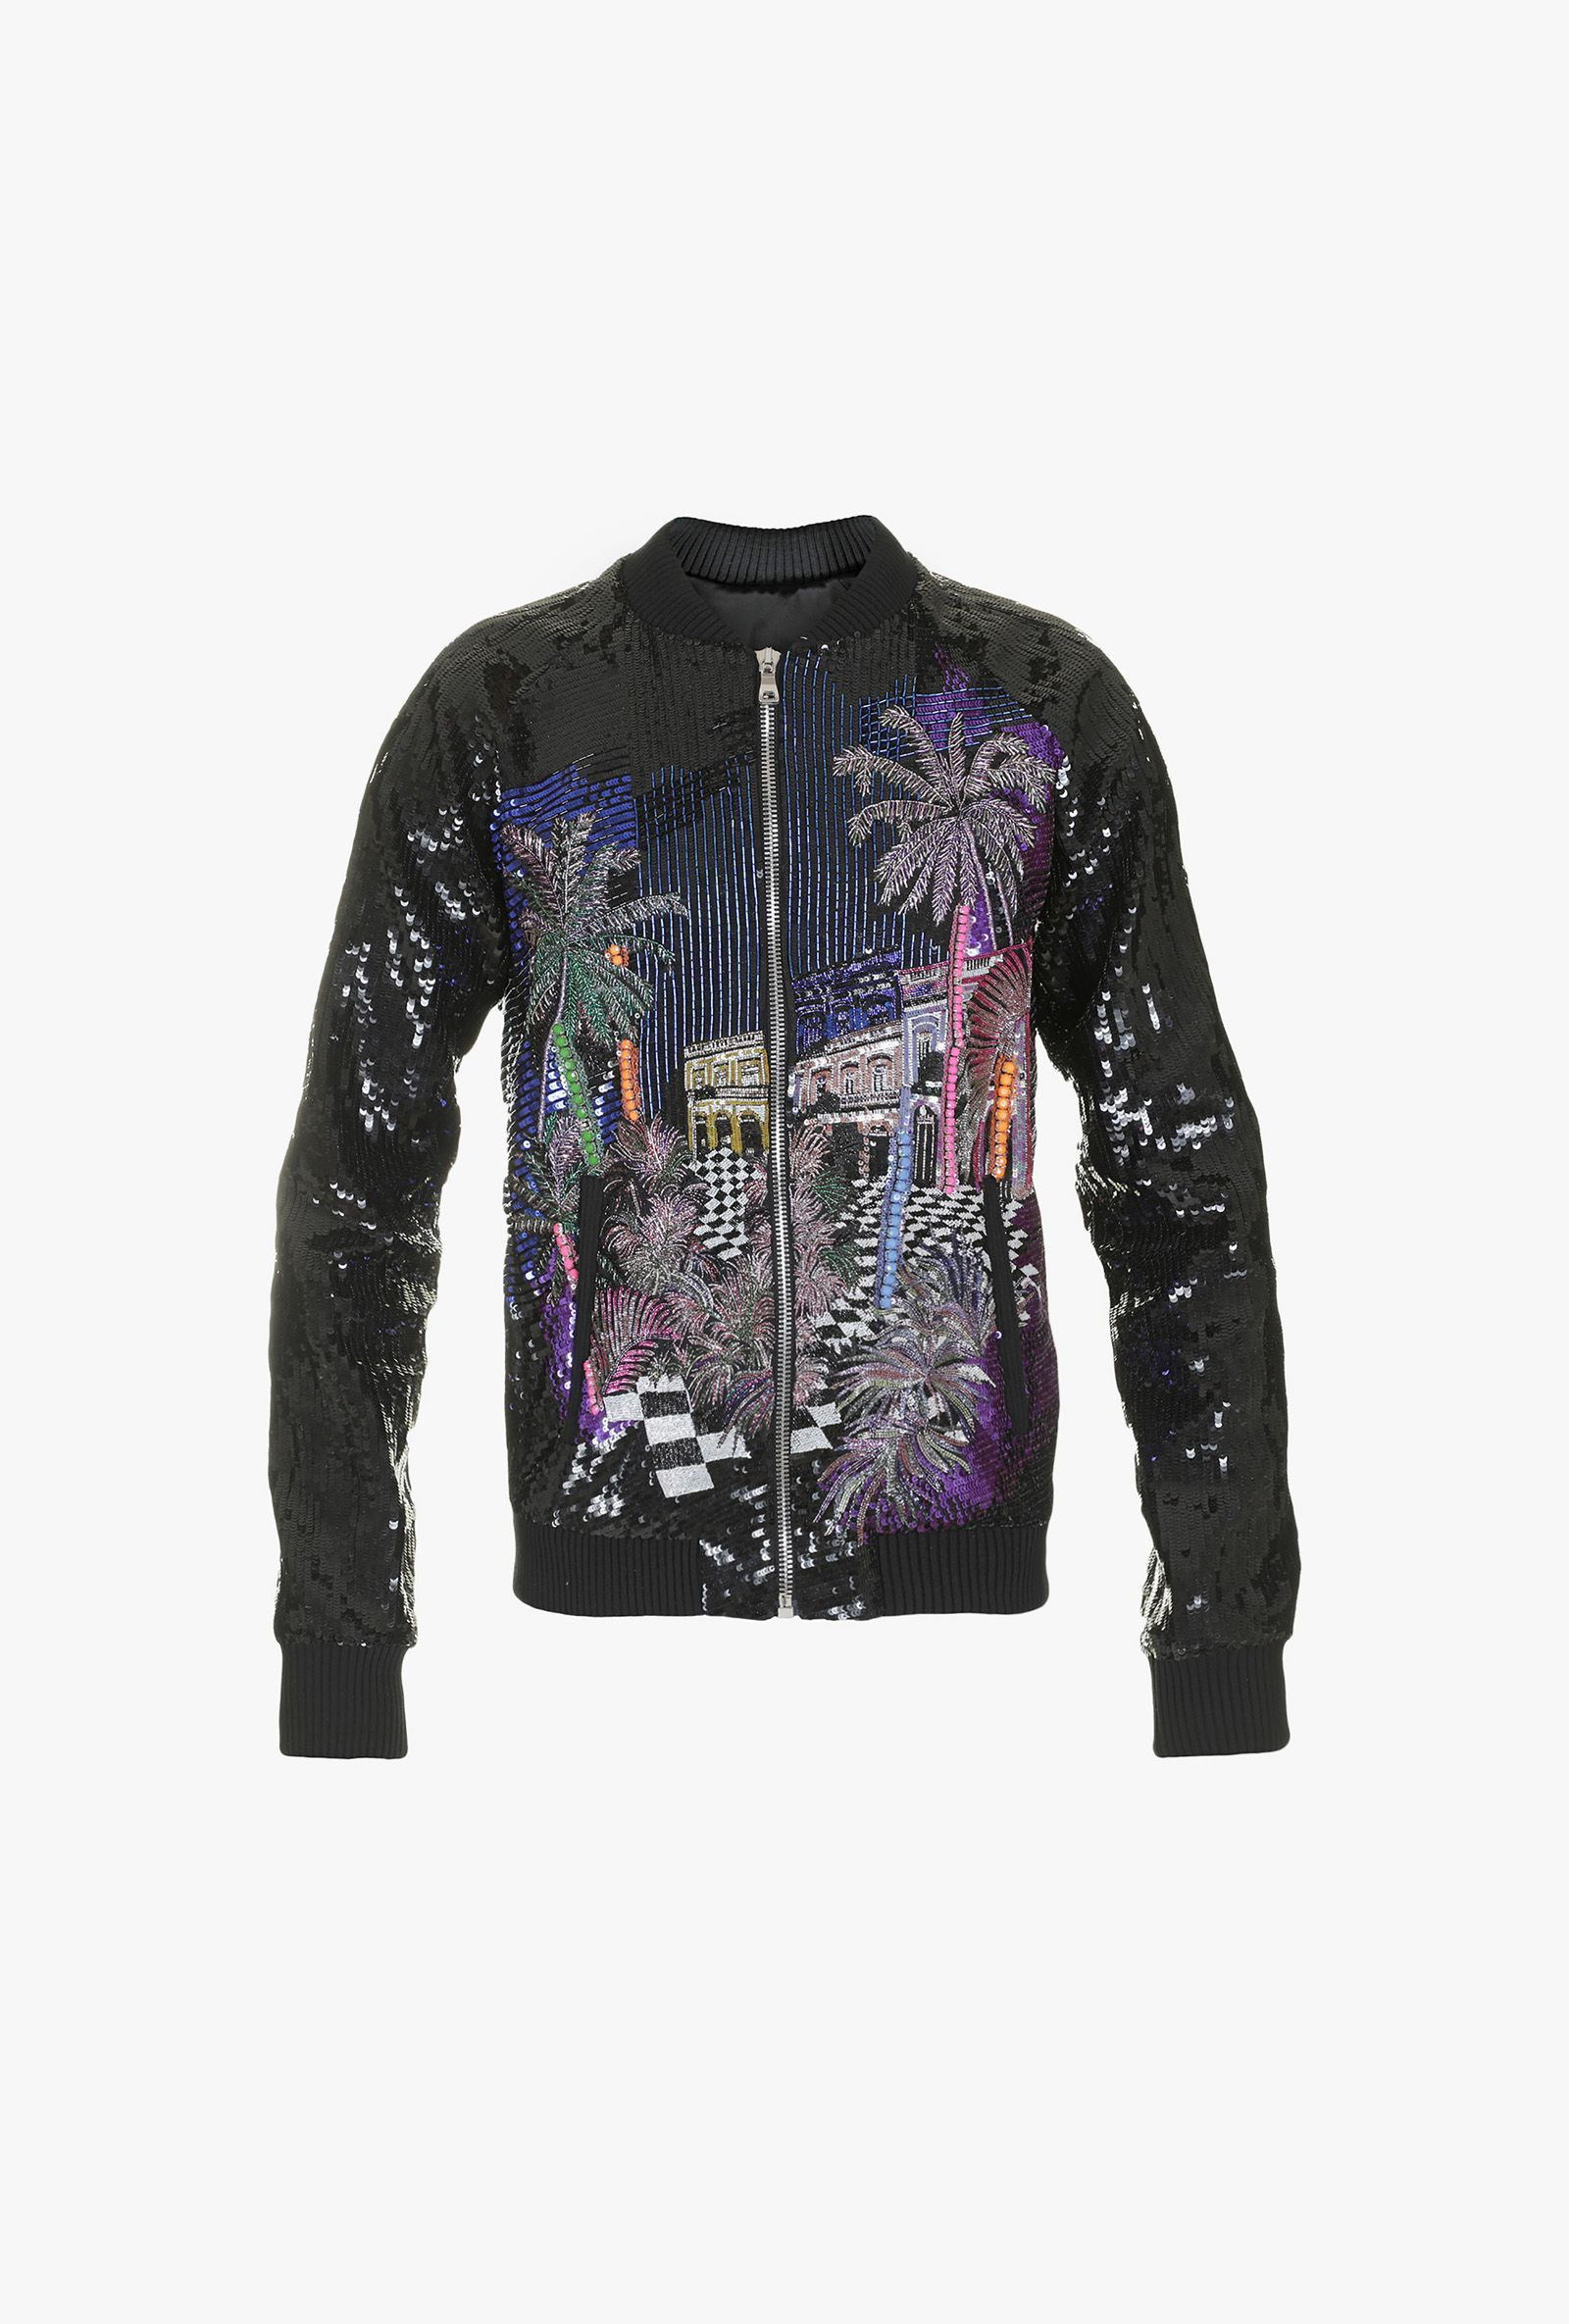 d1807f48a Embroidered Bomber Jacket for Men - Balmain.com | Fashion ...